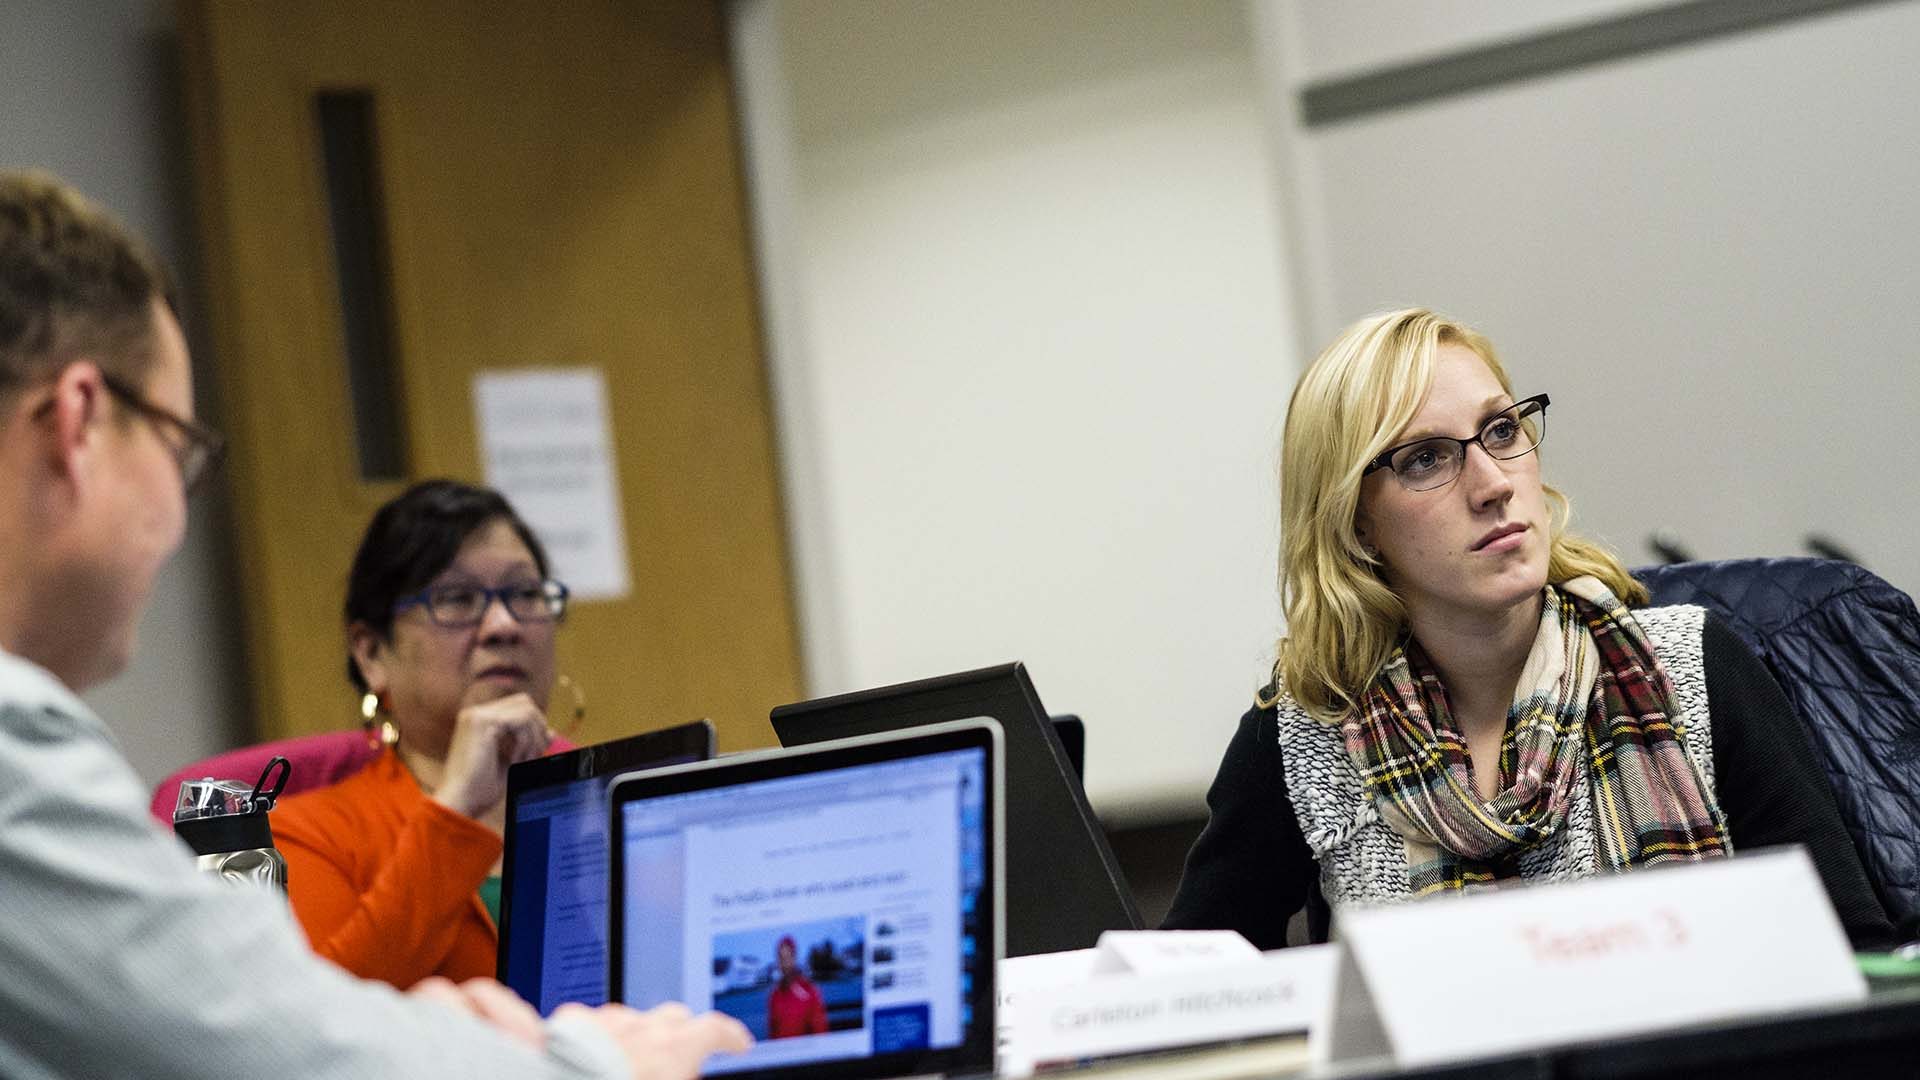 Students listen to a lecture during an Executive Education Class in Terence Murphy Hall.